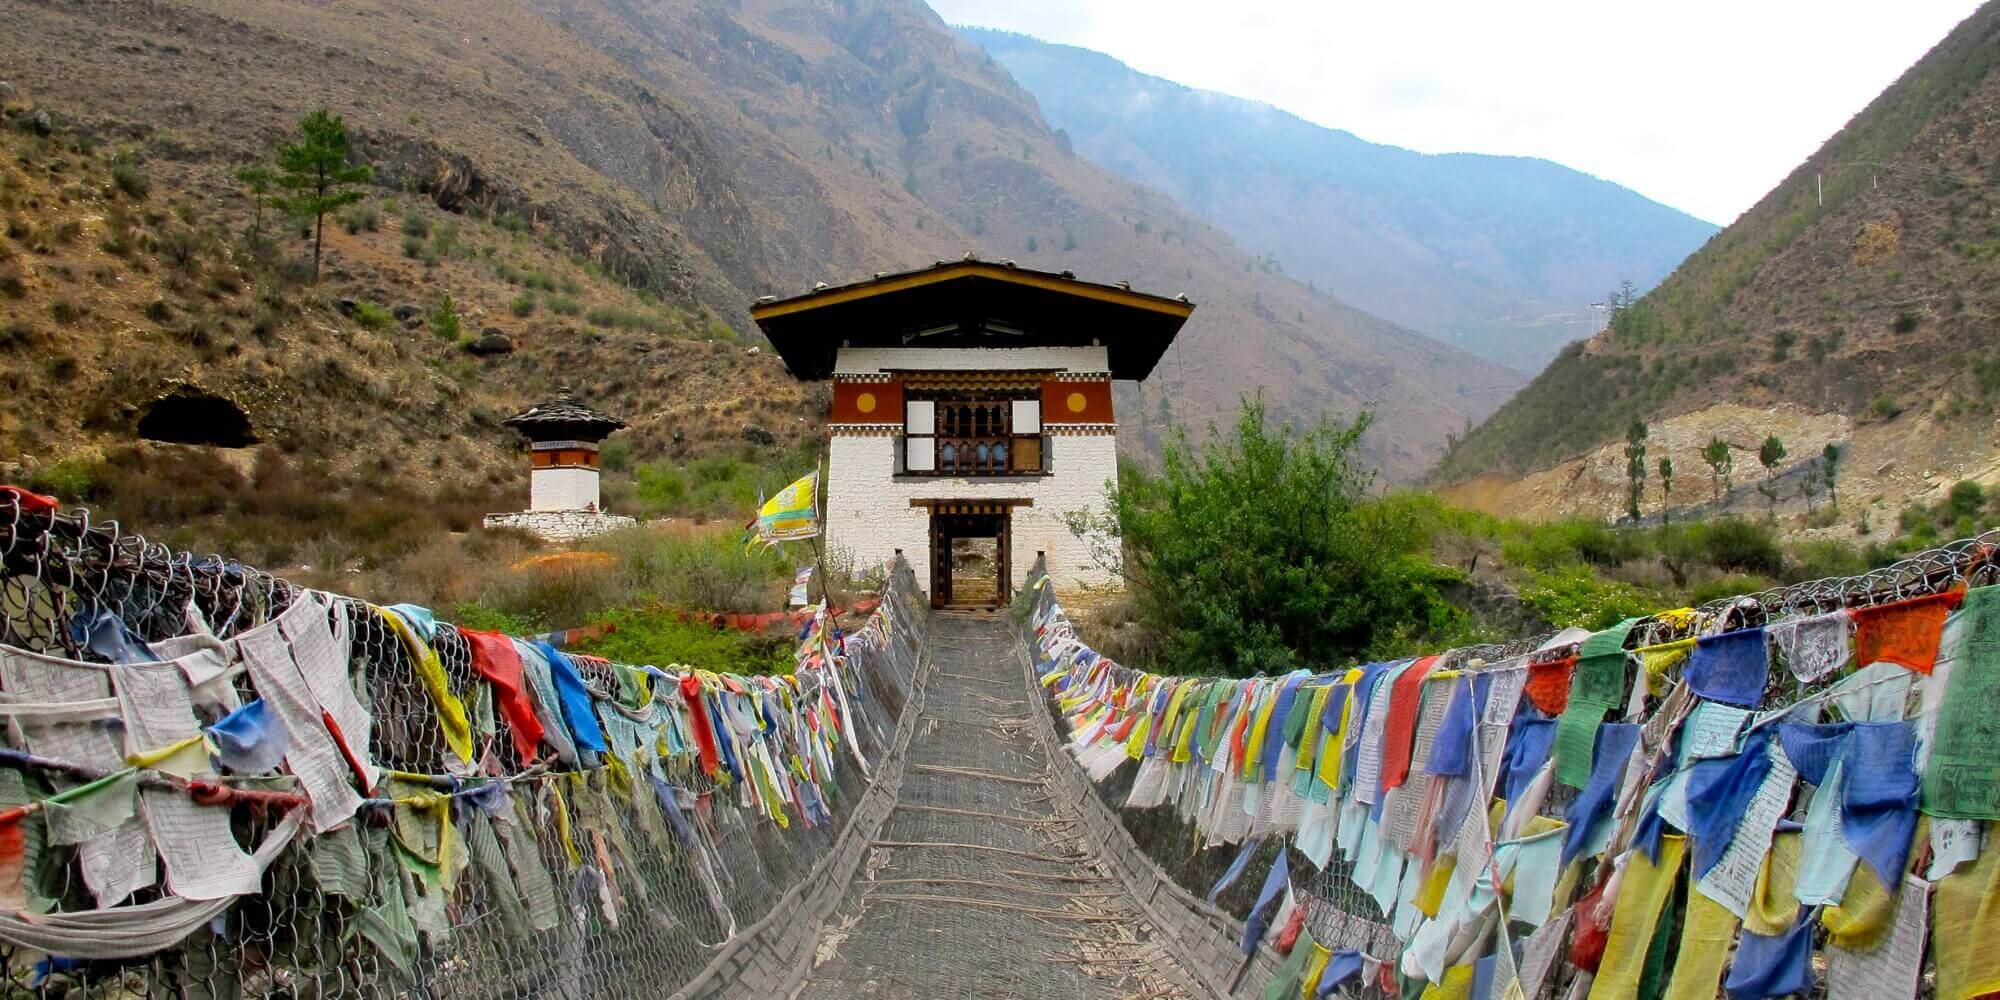 https://buddhatravel.com.au/assets/uploads/package/2019-08-20-05-51-49-7-days-discover-bhutan-tour.jpg